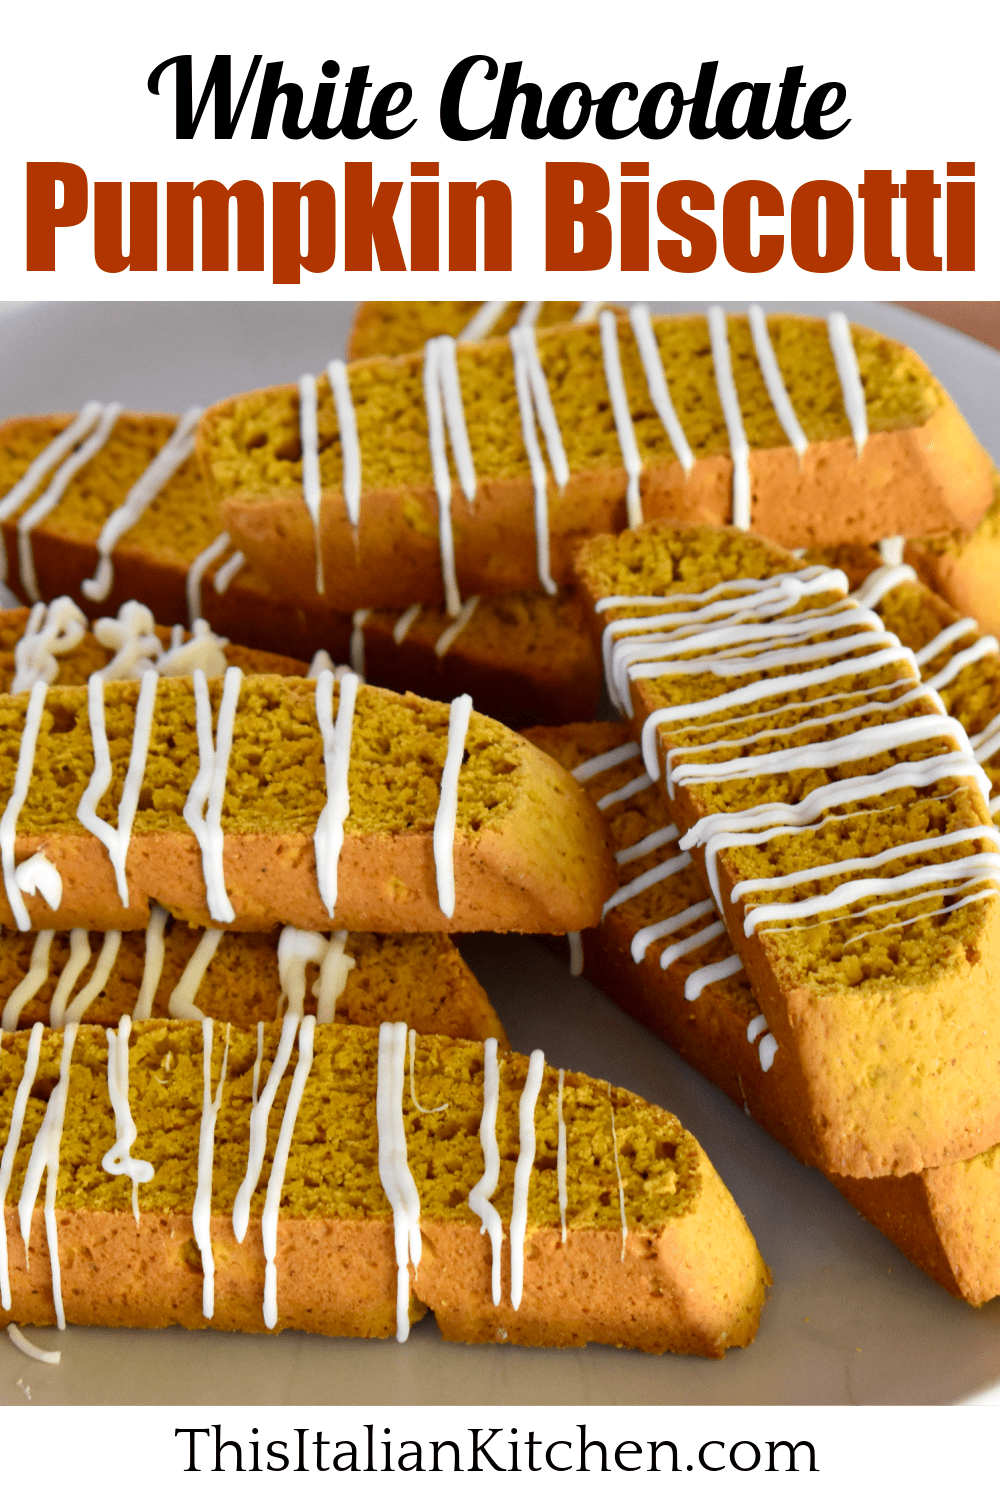 Pumpkin biscottii with white chocolate drizzle.